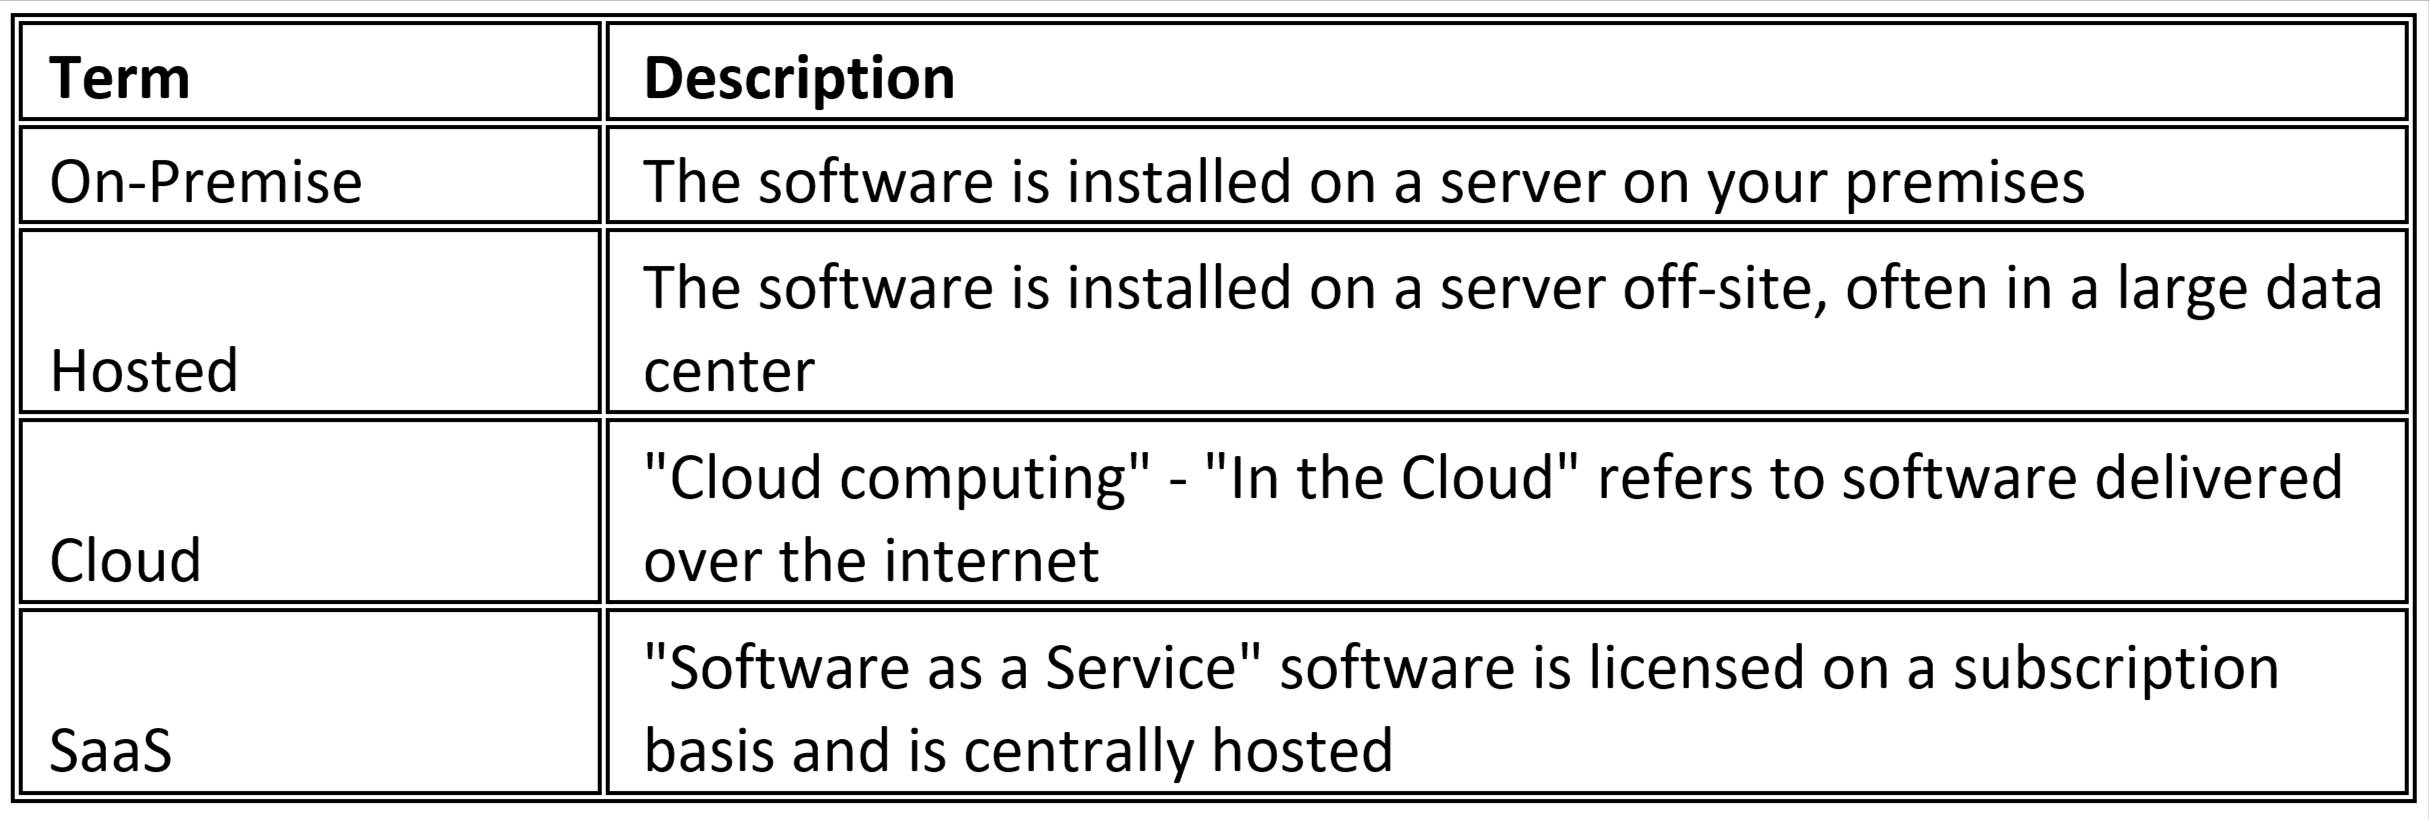 On-Premise, Hosted, Cloud & SaaS Definitions